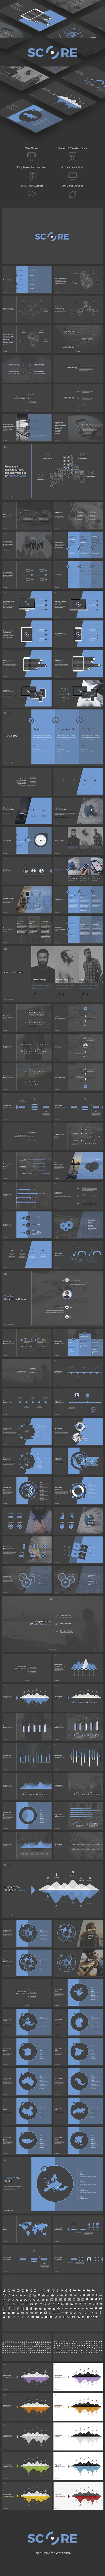 Score PowerPoint Template. Download here: http://graphicriver.net/item/score-powerpoint/15733012?ref=ksioks